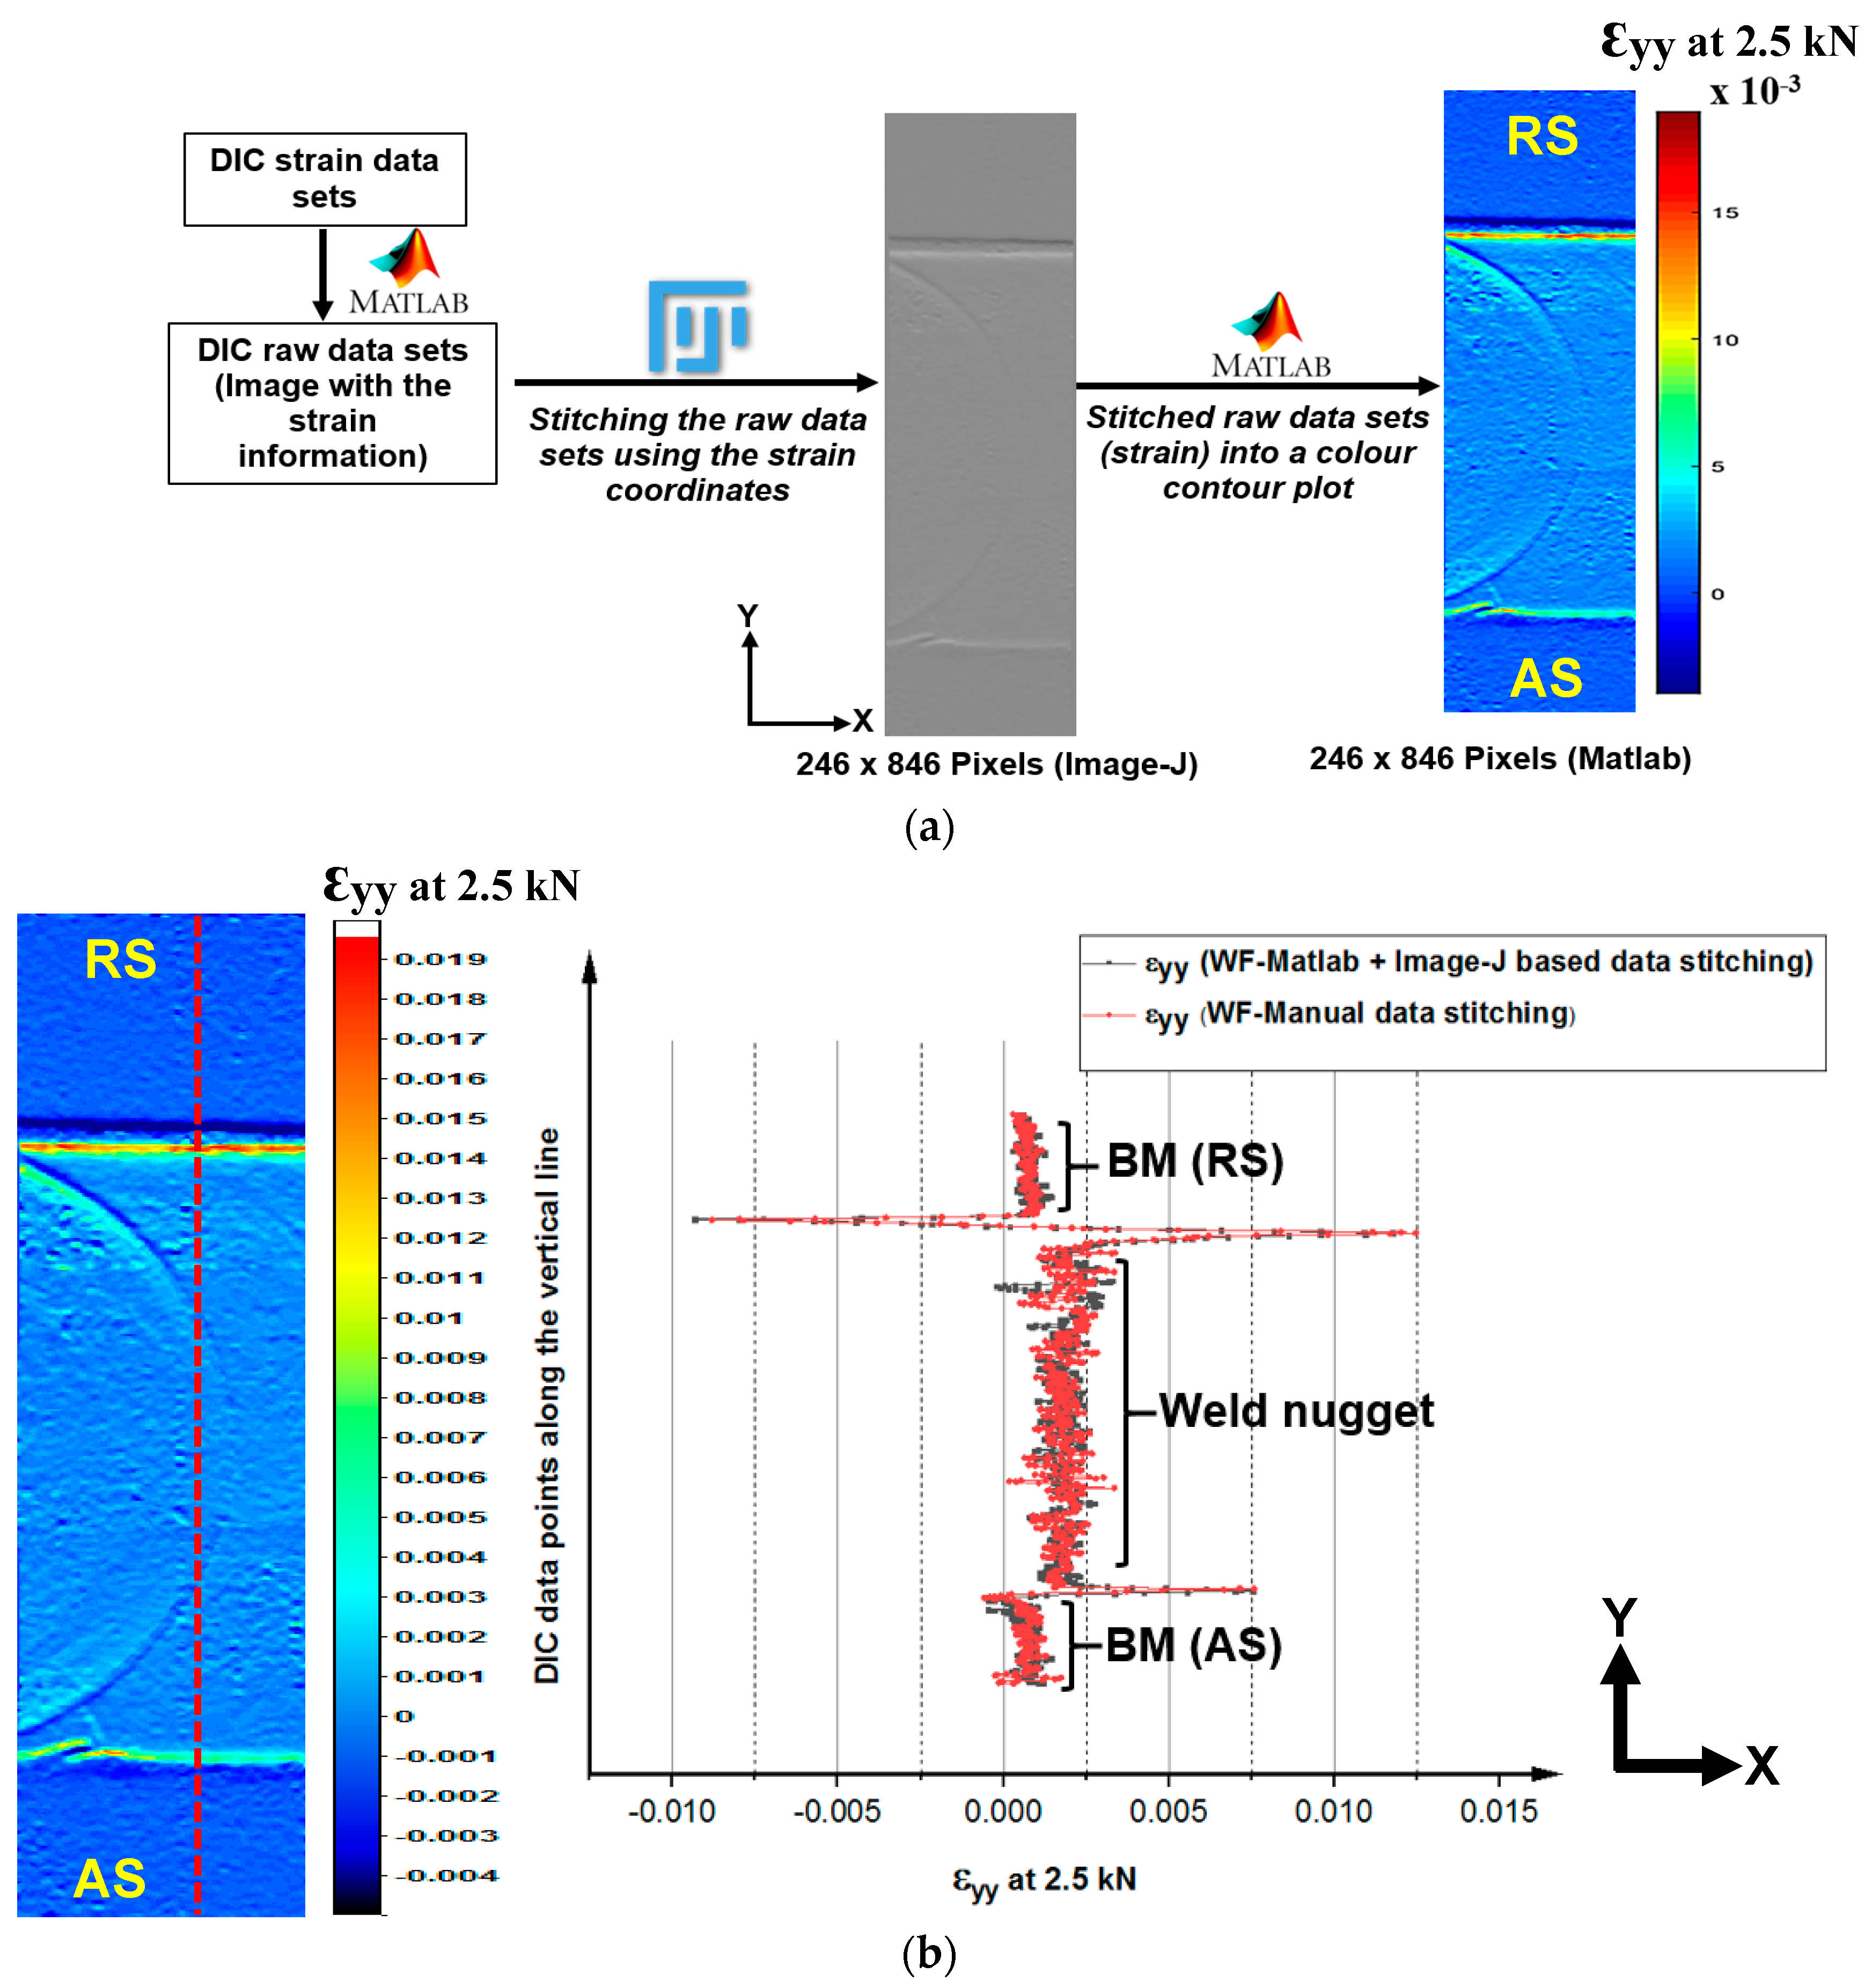 Metals | Free Full-Text | Development of High-Fidelity Imaging